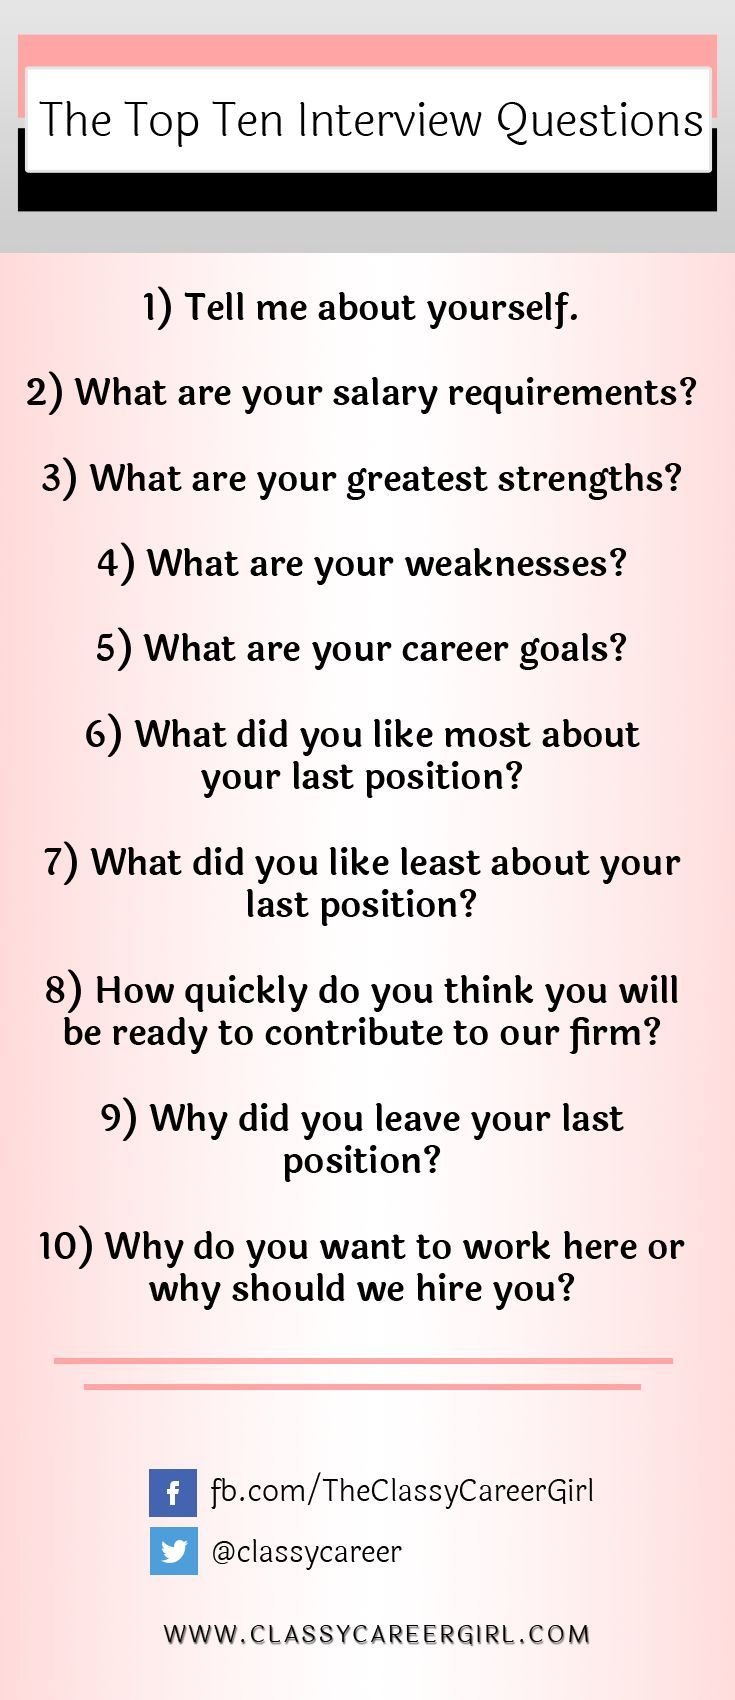 behavioral based interview questions you might be asked how to answer the top ten most asked interview questions video